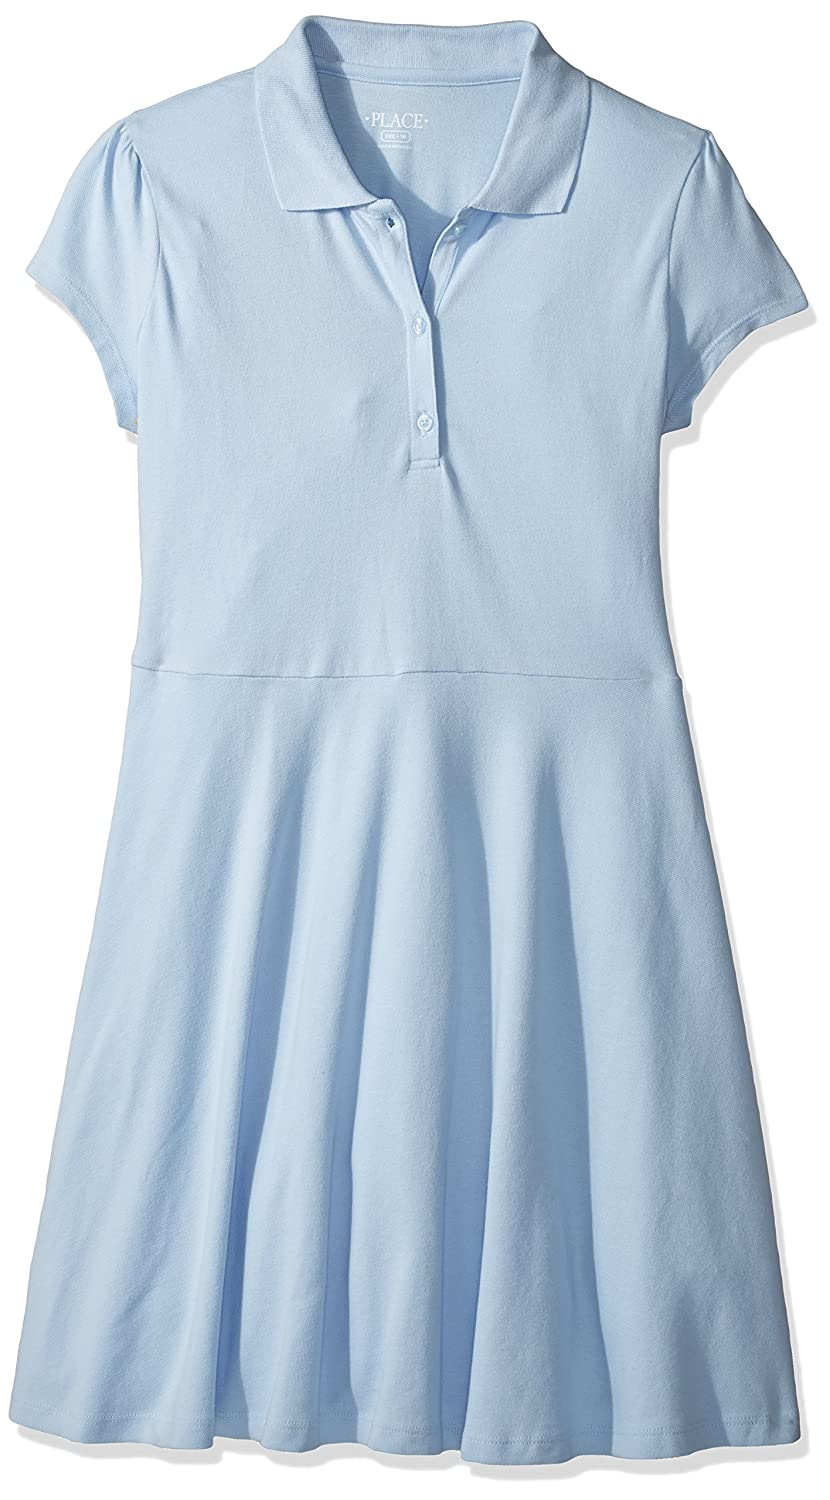 The Children's Place Girls' Uniform Short Sleeve Polo Dress